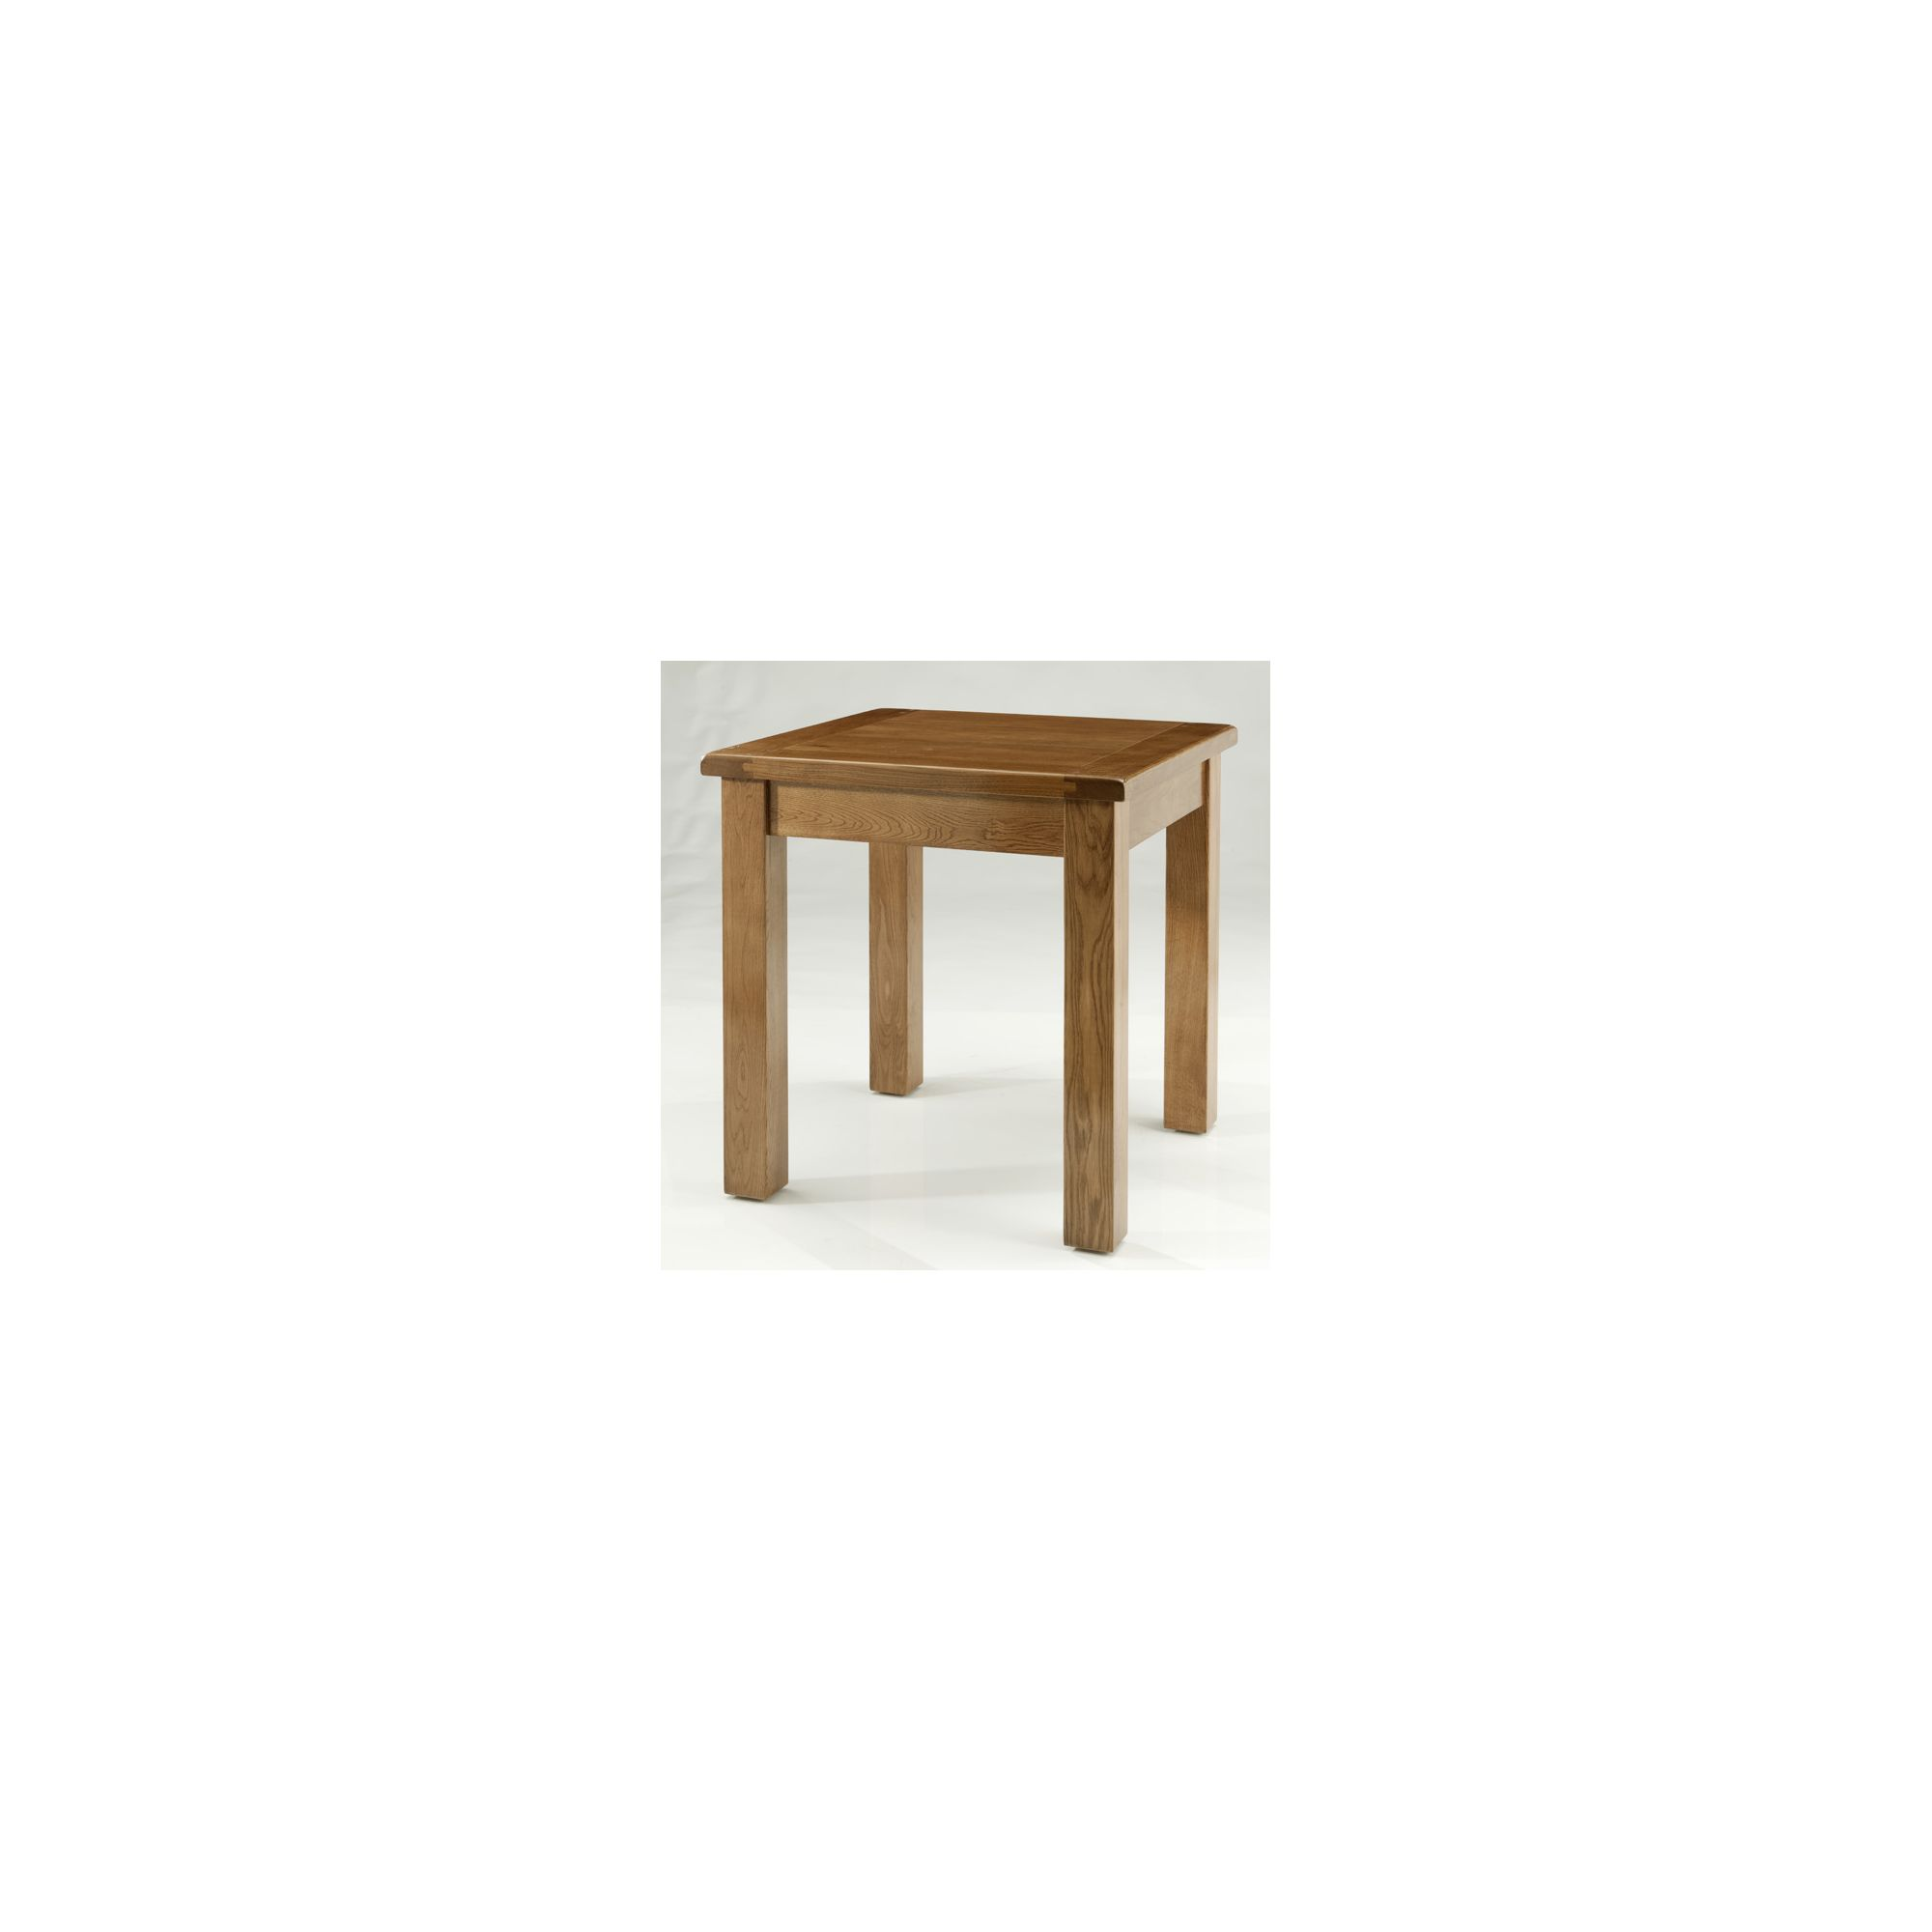 Originals Bretagne Square Fixed Top Dining Table - 75cm x 75cm